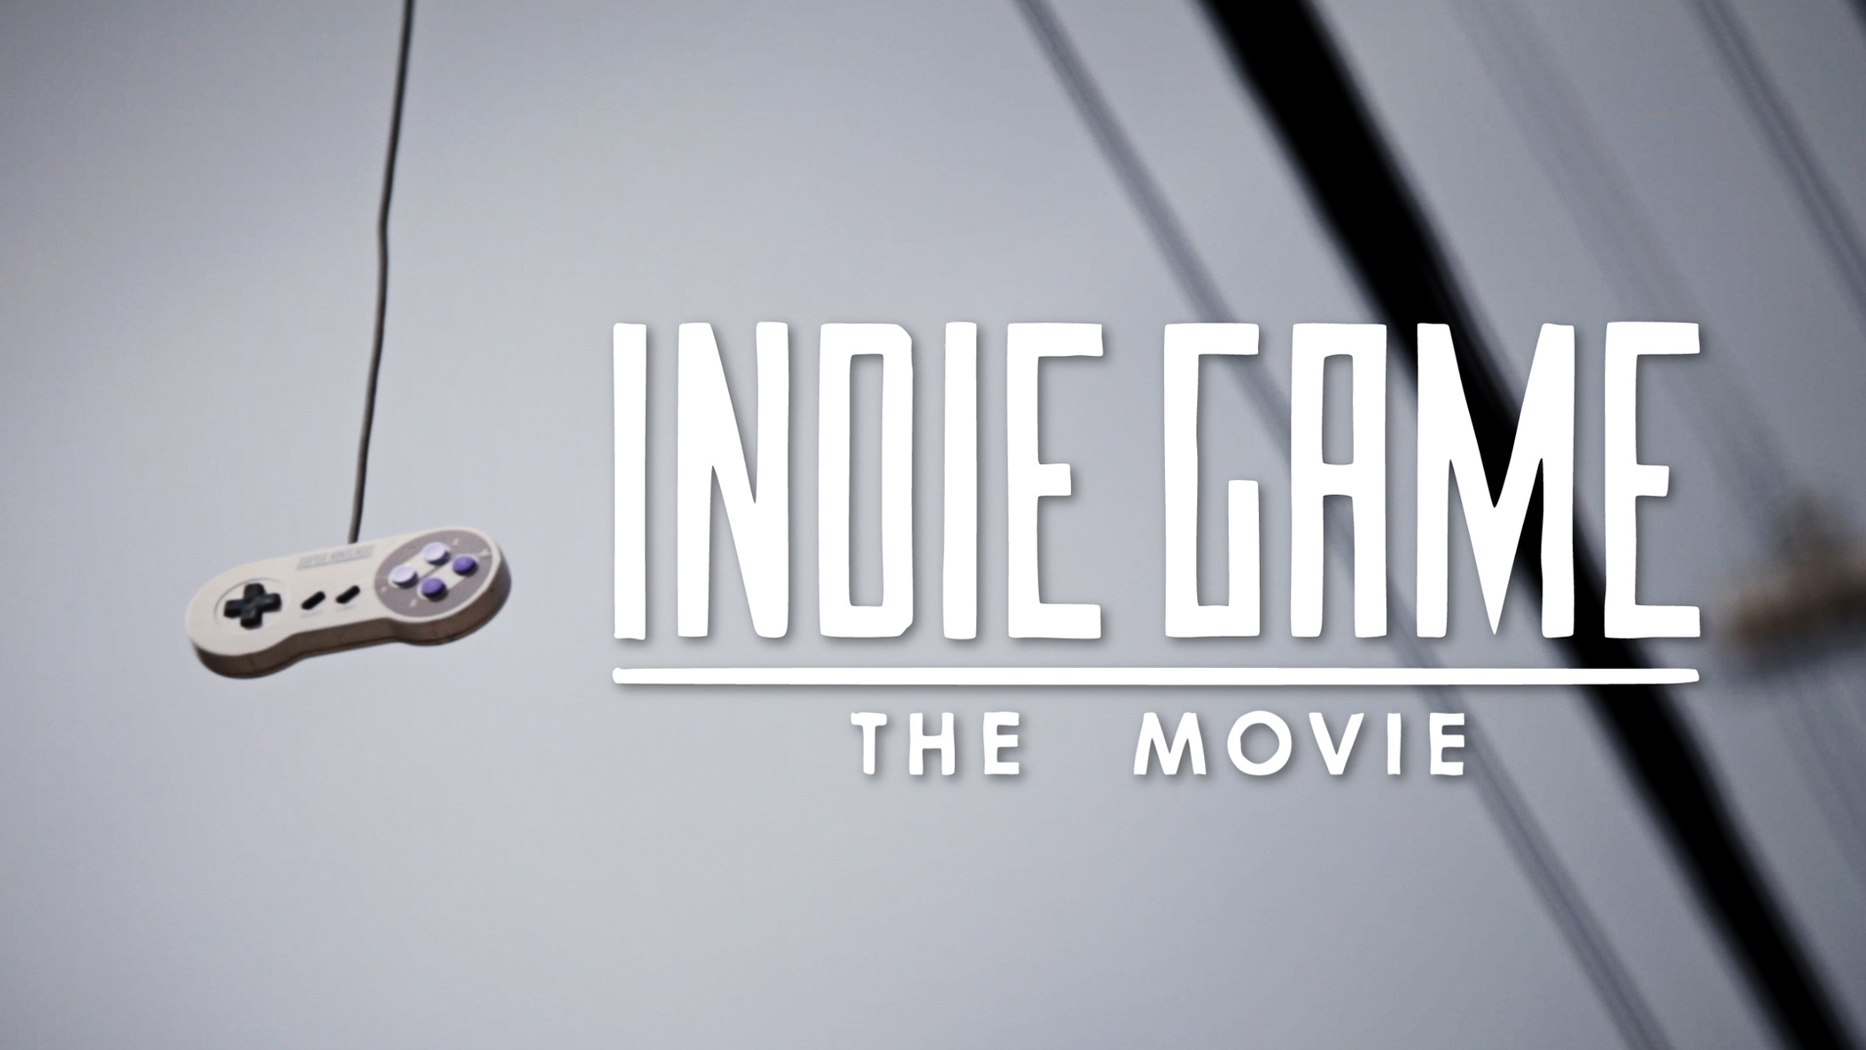 Indie-Game-the-movie-2